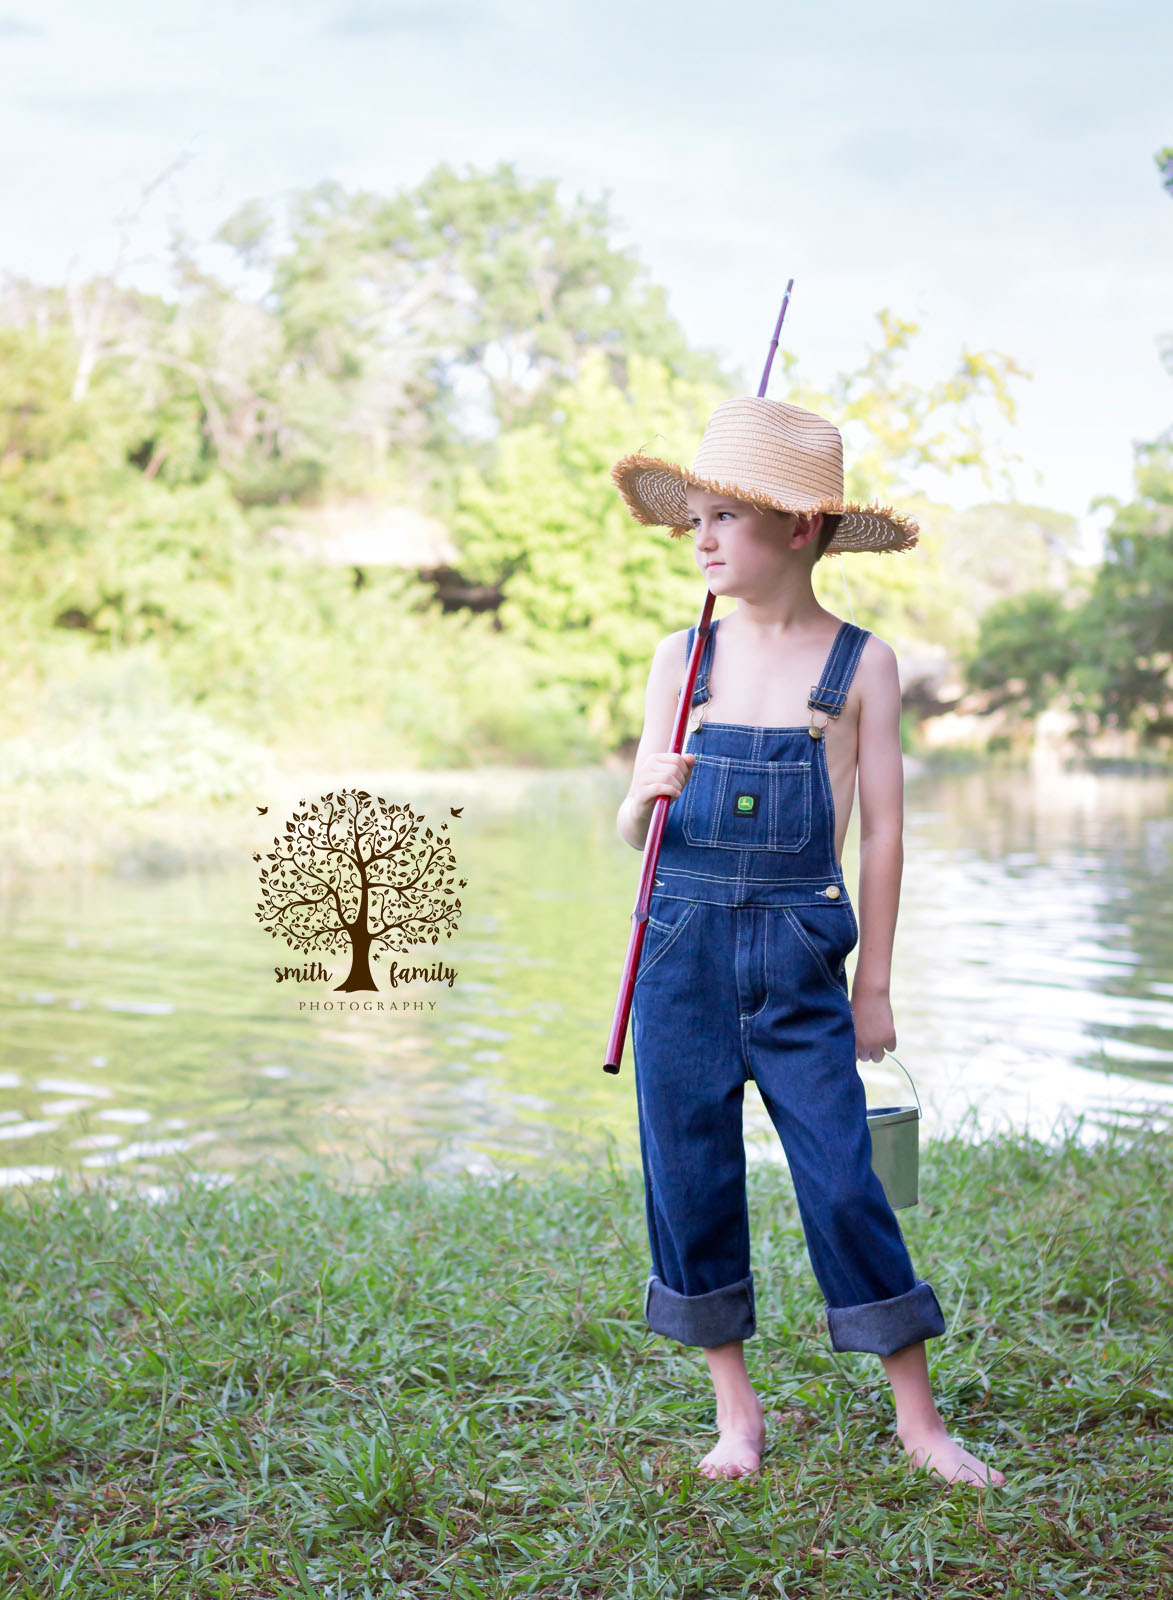 huckleberry_finn_limited_edition_session_smith_family_photography_waco